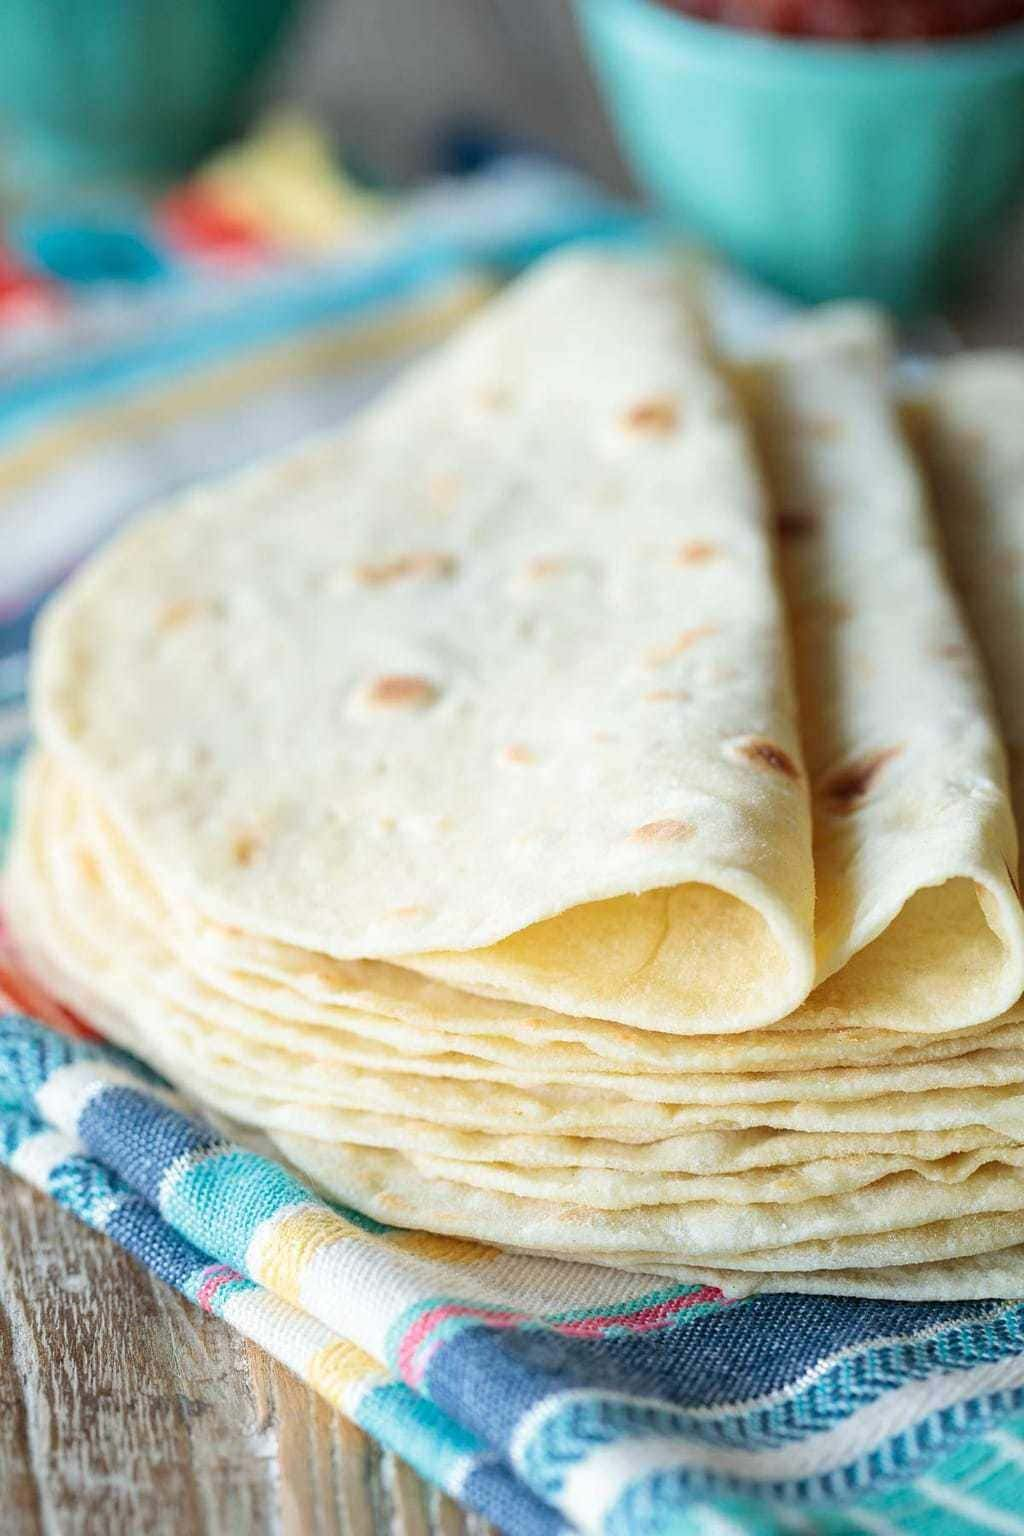 Closeup vertical photo of a stack of Homemade Flour Tortillas on a colorful cloth towel.